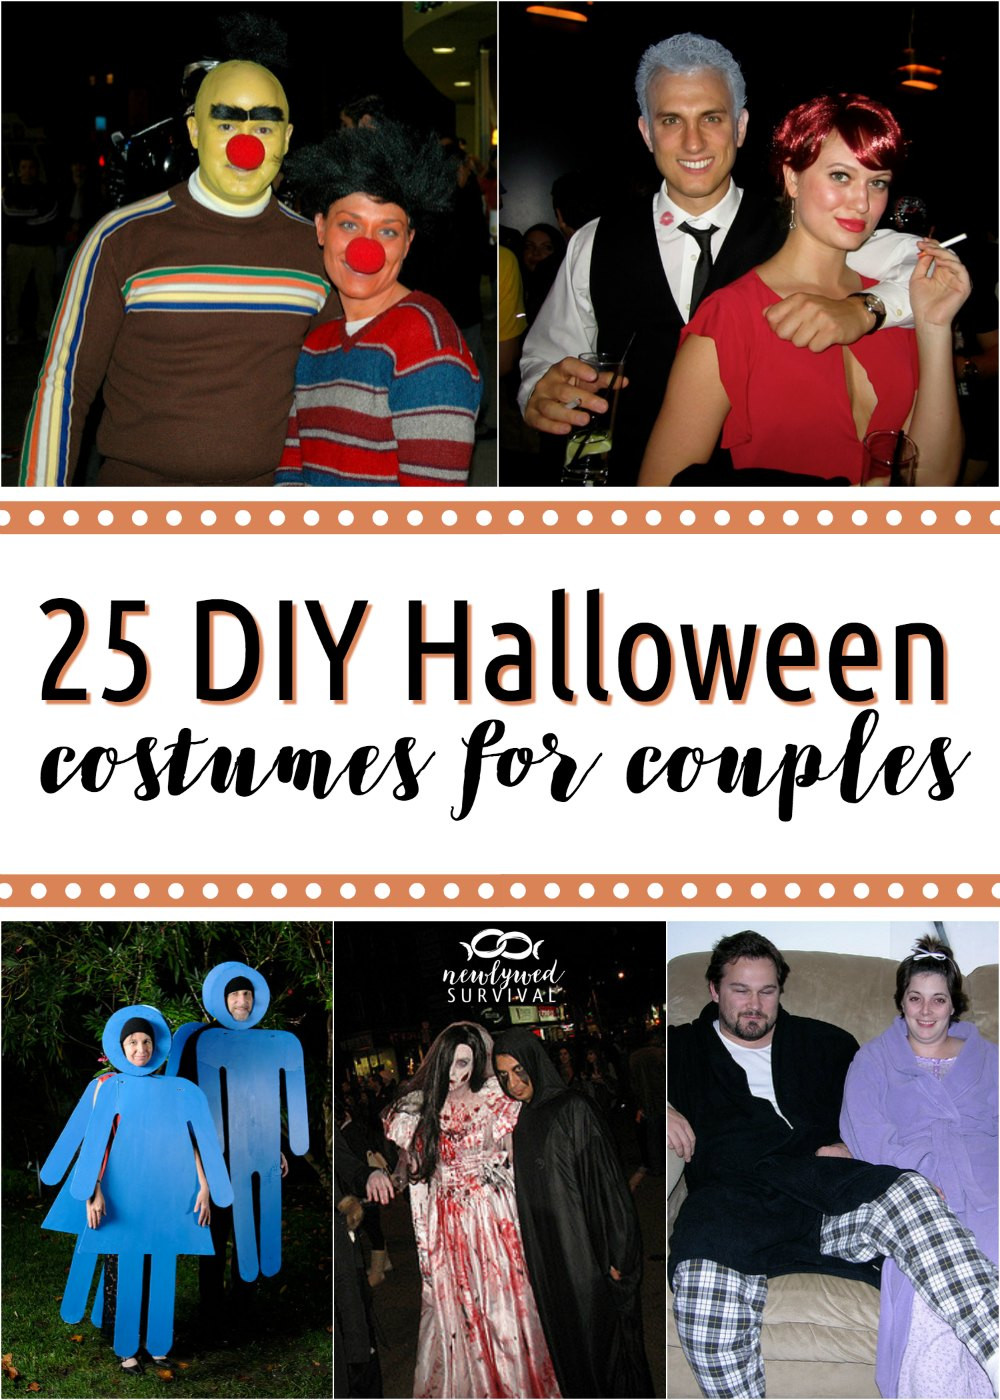 DIY Costume For Couples  25 DIY Costumes for Couples Newlywed Survival